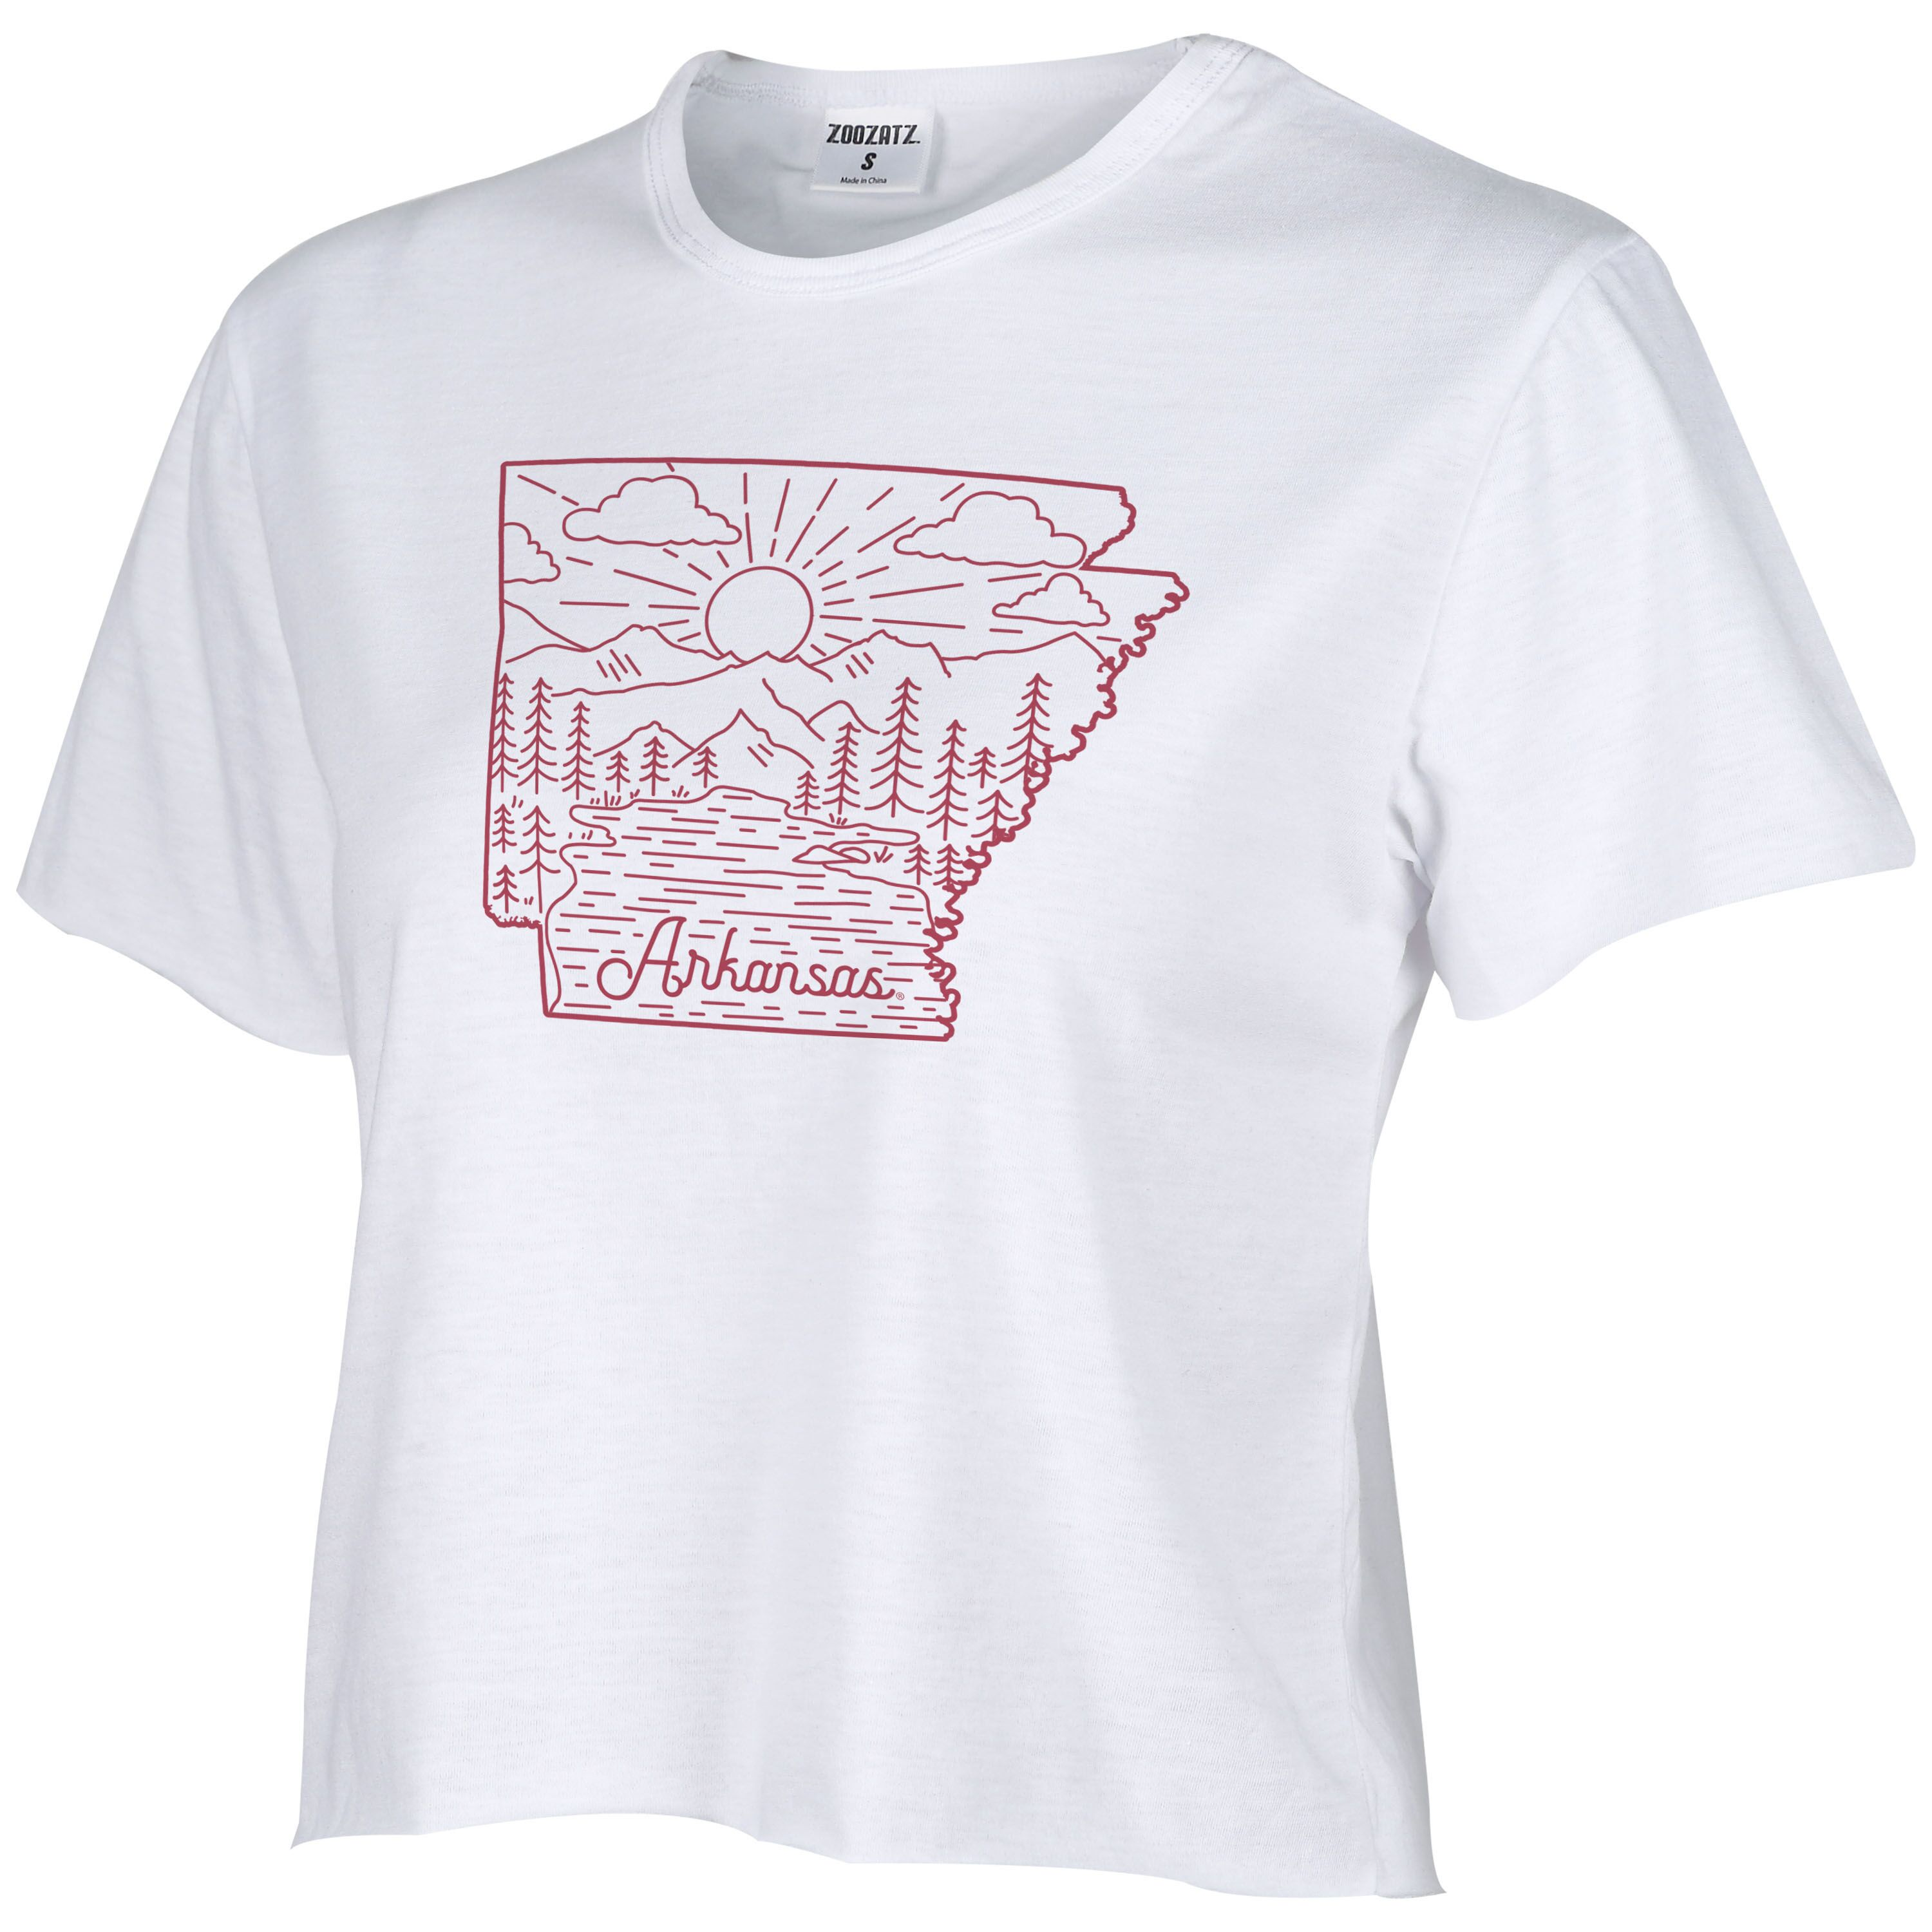 W Humble Crop Tee State Outline